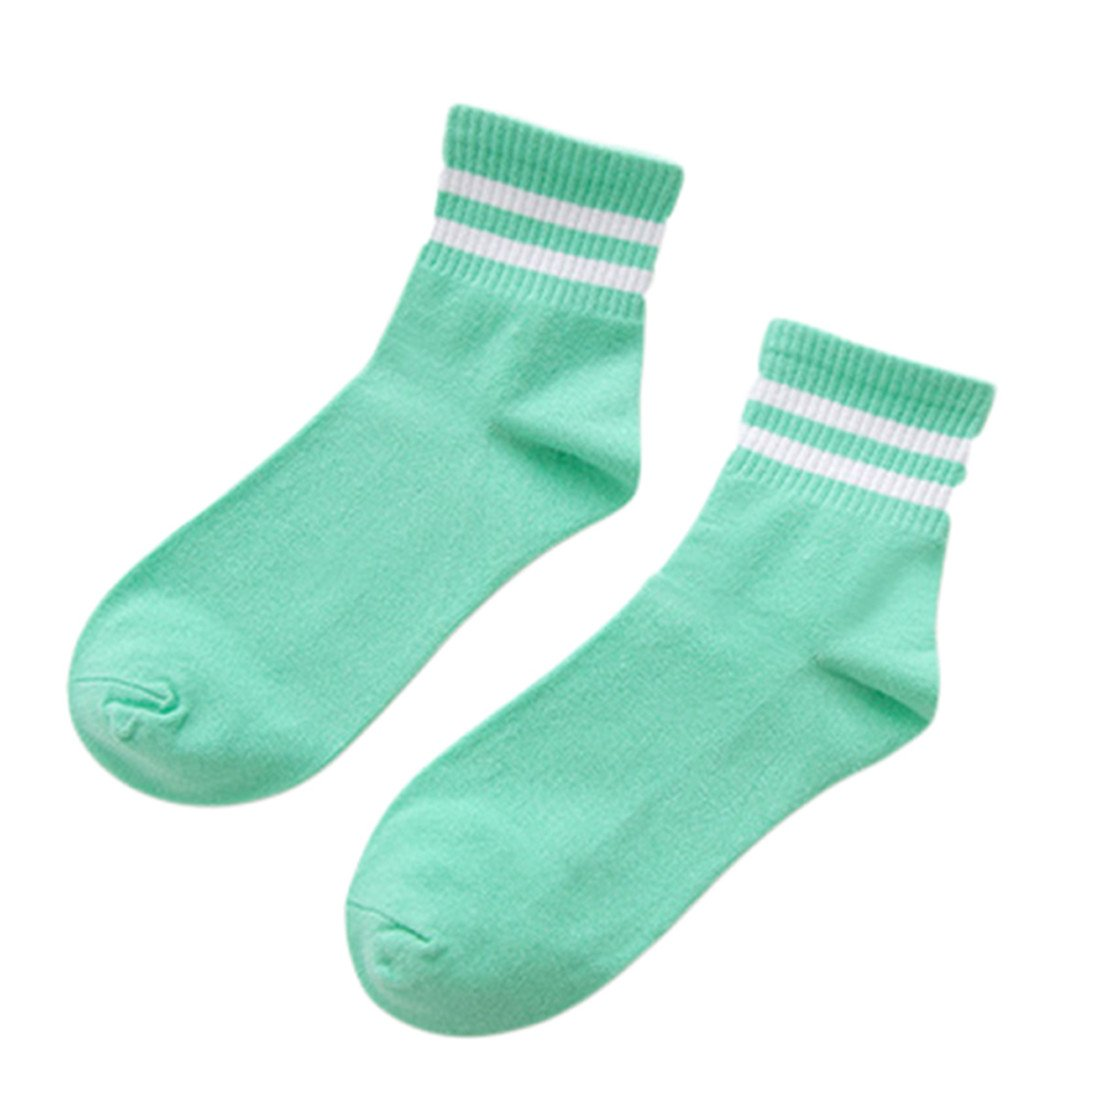 Yesiidor Stripe Cotton Crew Socks Fashion Casual Soft College Style Stretchy Novelty Ankle Socks